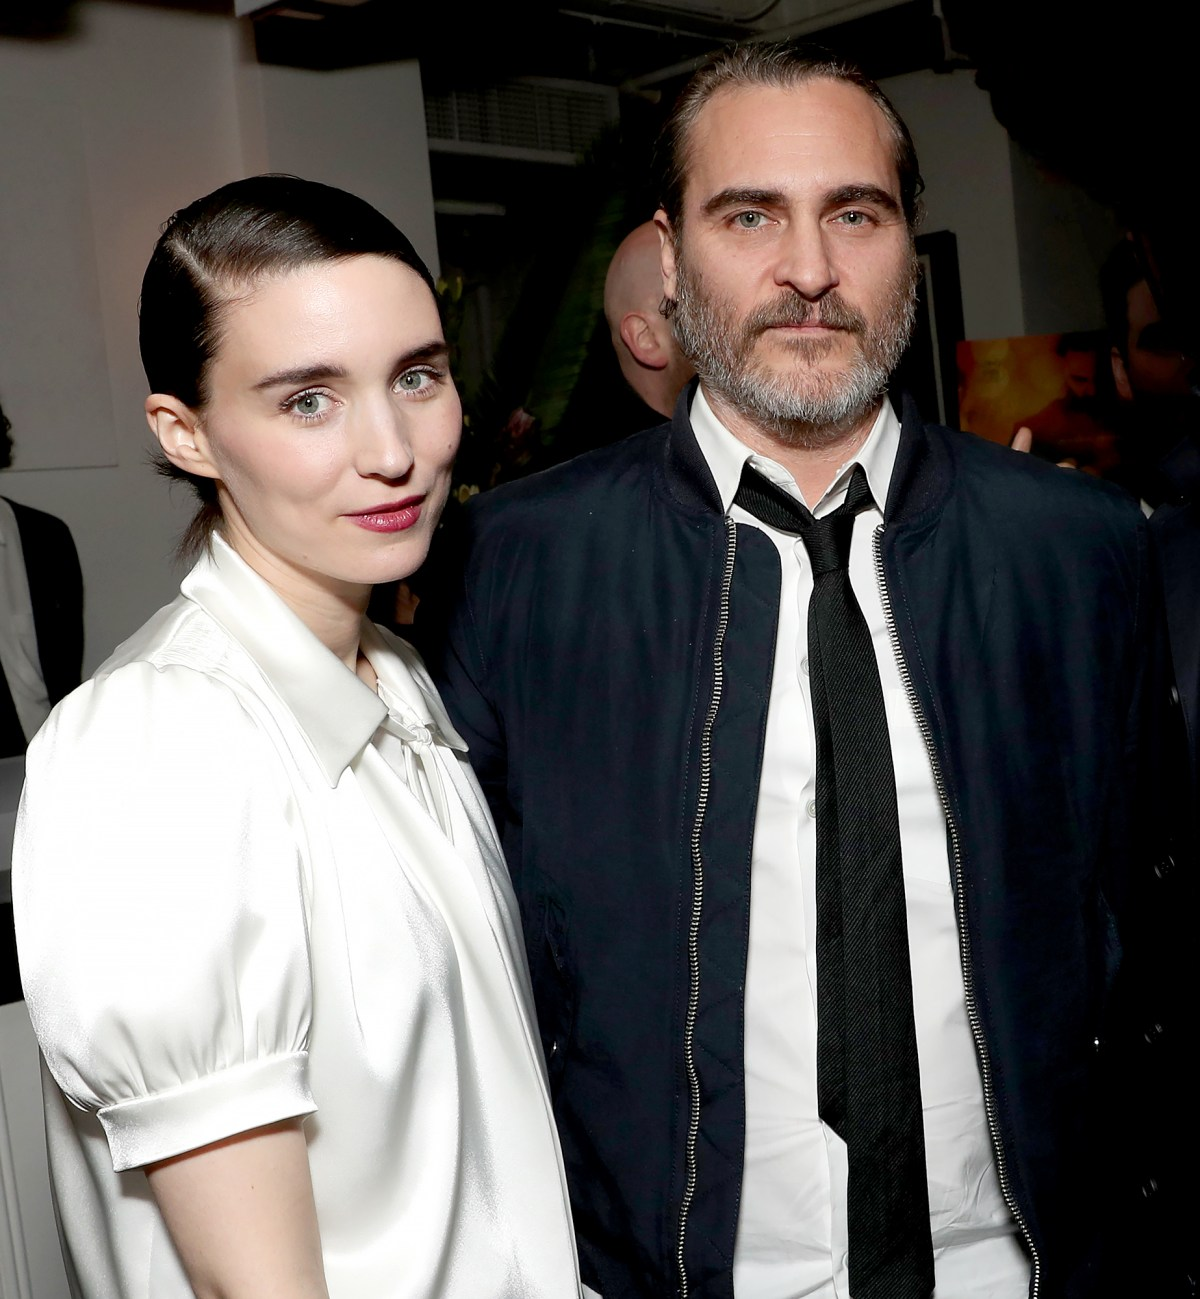 Rooney Mara Gives Birth to 1st Child With Fiance Joaquin Phoenix